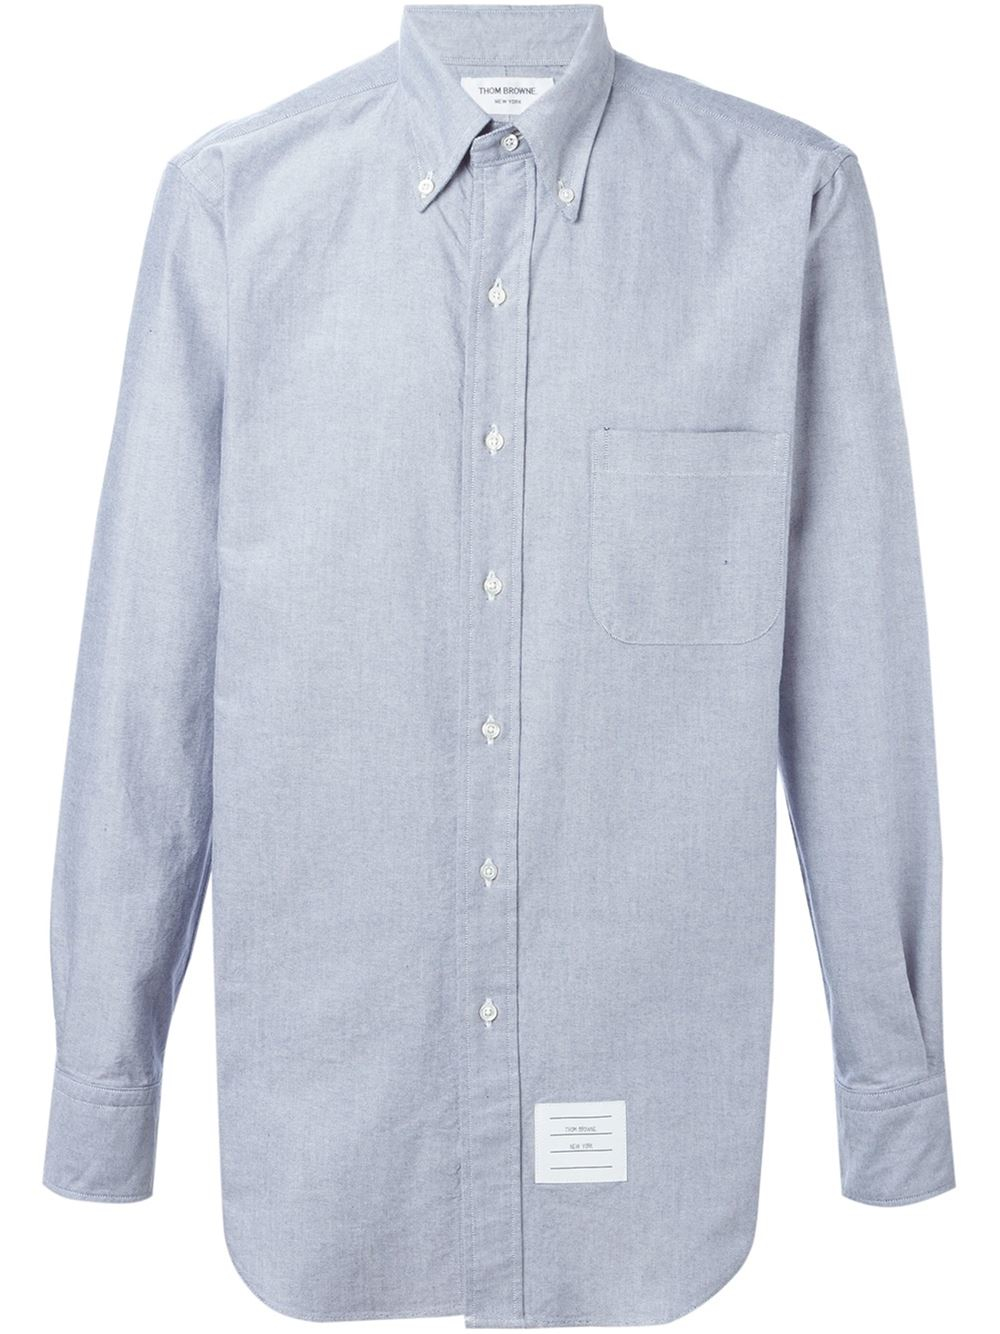 Thom browne pocket shirt in blue for men lyst for Thom browne shirt sale